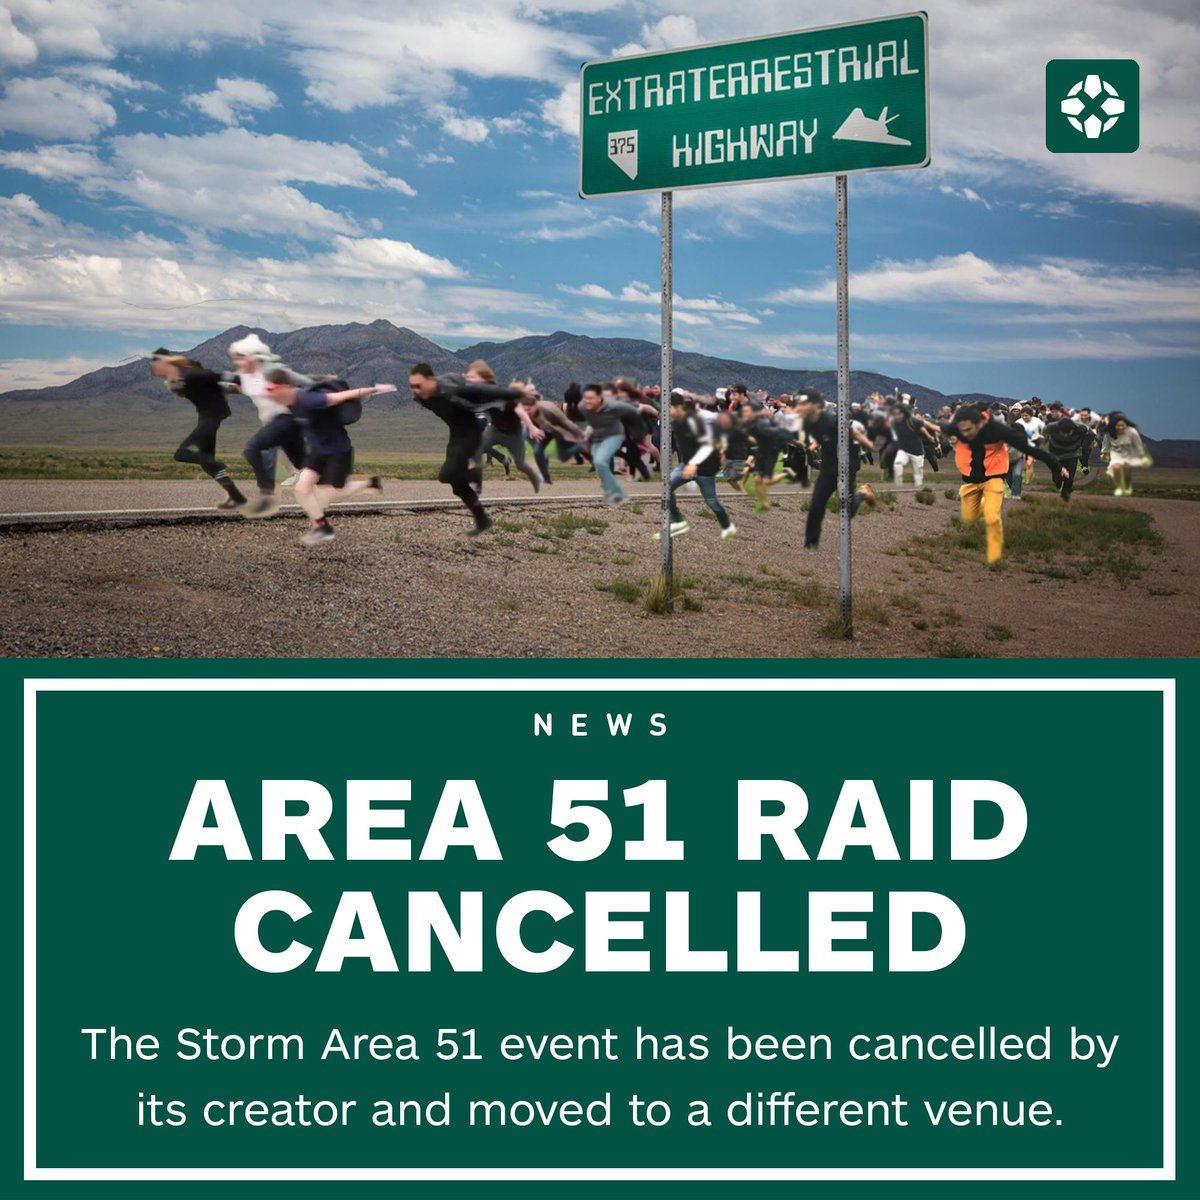 The event was set to potentially see thousands of people Naruto run to Nevada's Area 51 facility in hopes of finding alien life. <br>http://pic.twitter.com/z0s2o4v25U